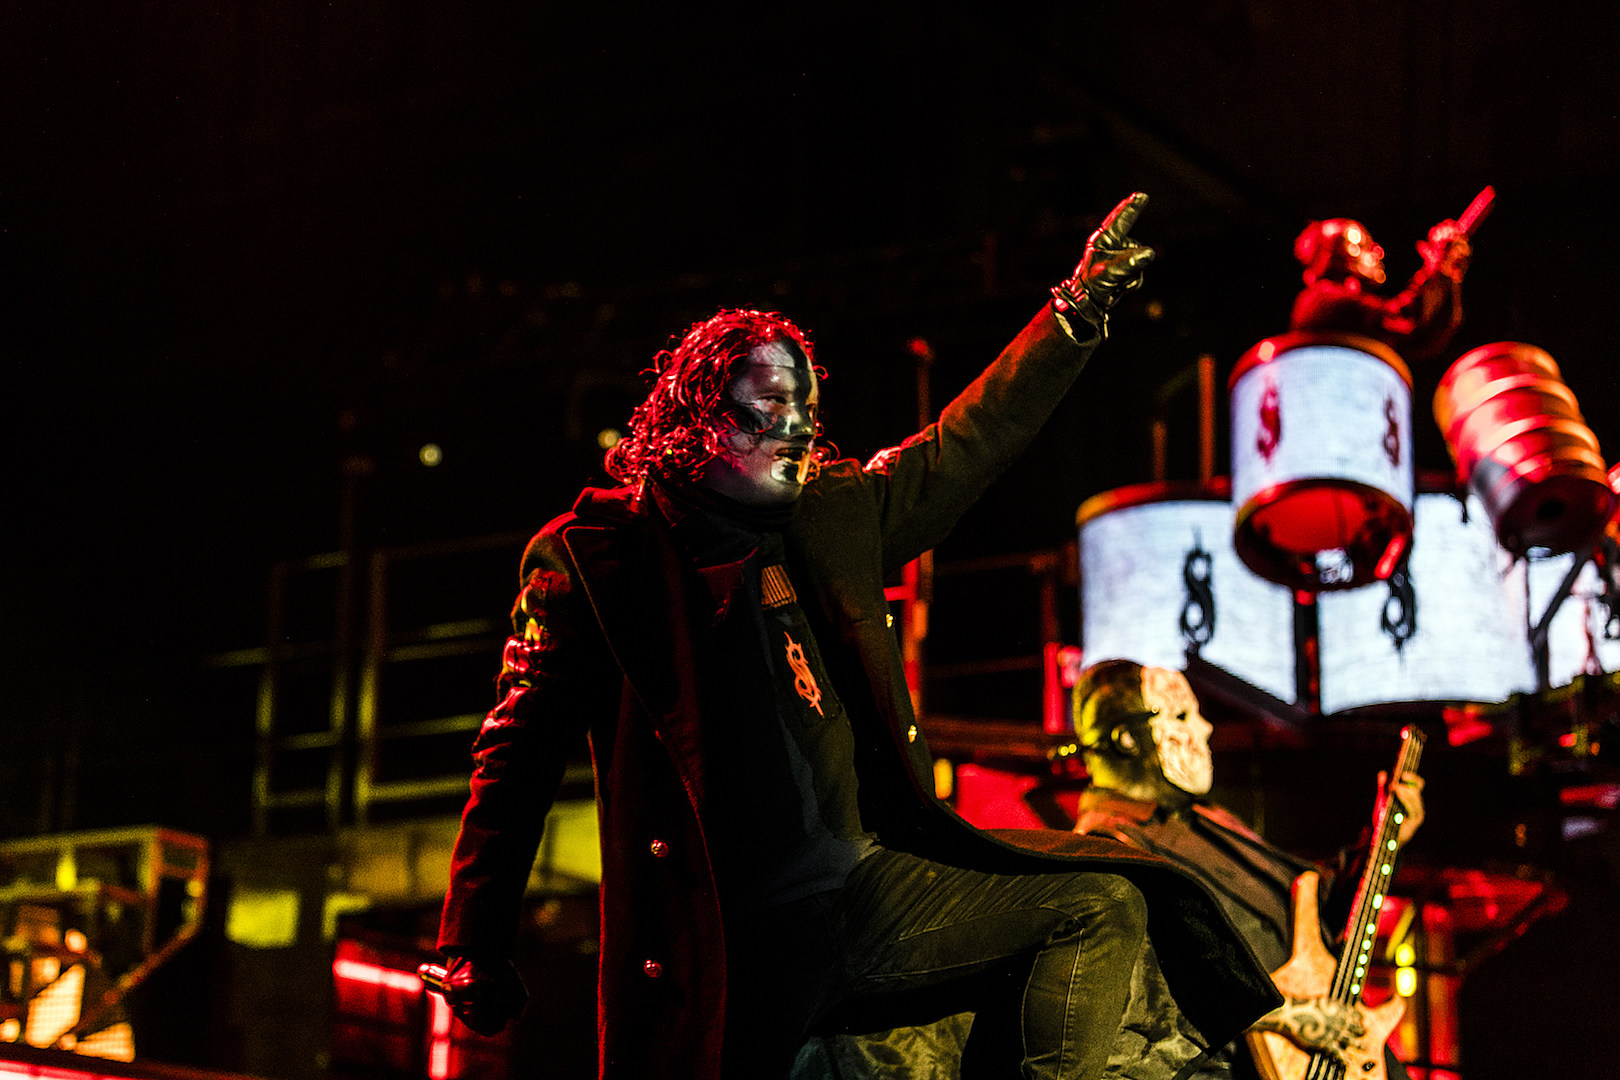 Slipknot's 'We Are Not Your Kind' First Metal Album to Hit No. 1 in the UK Since 2015